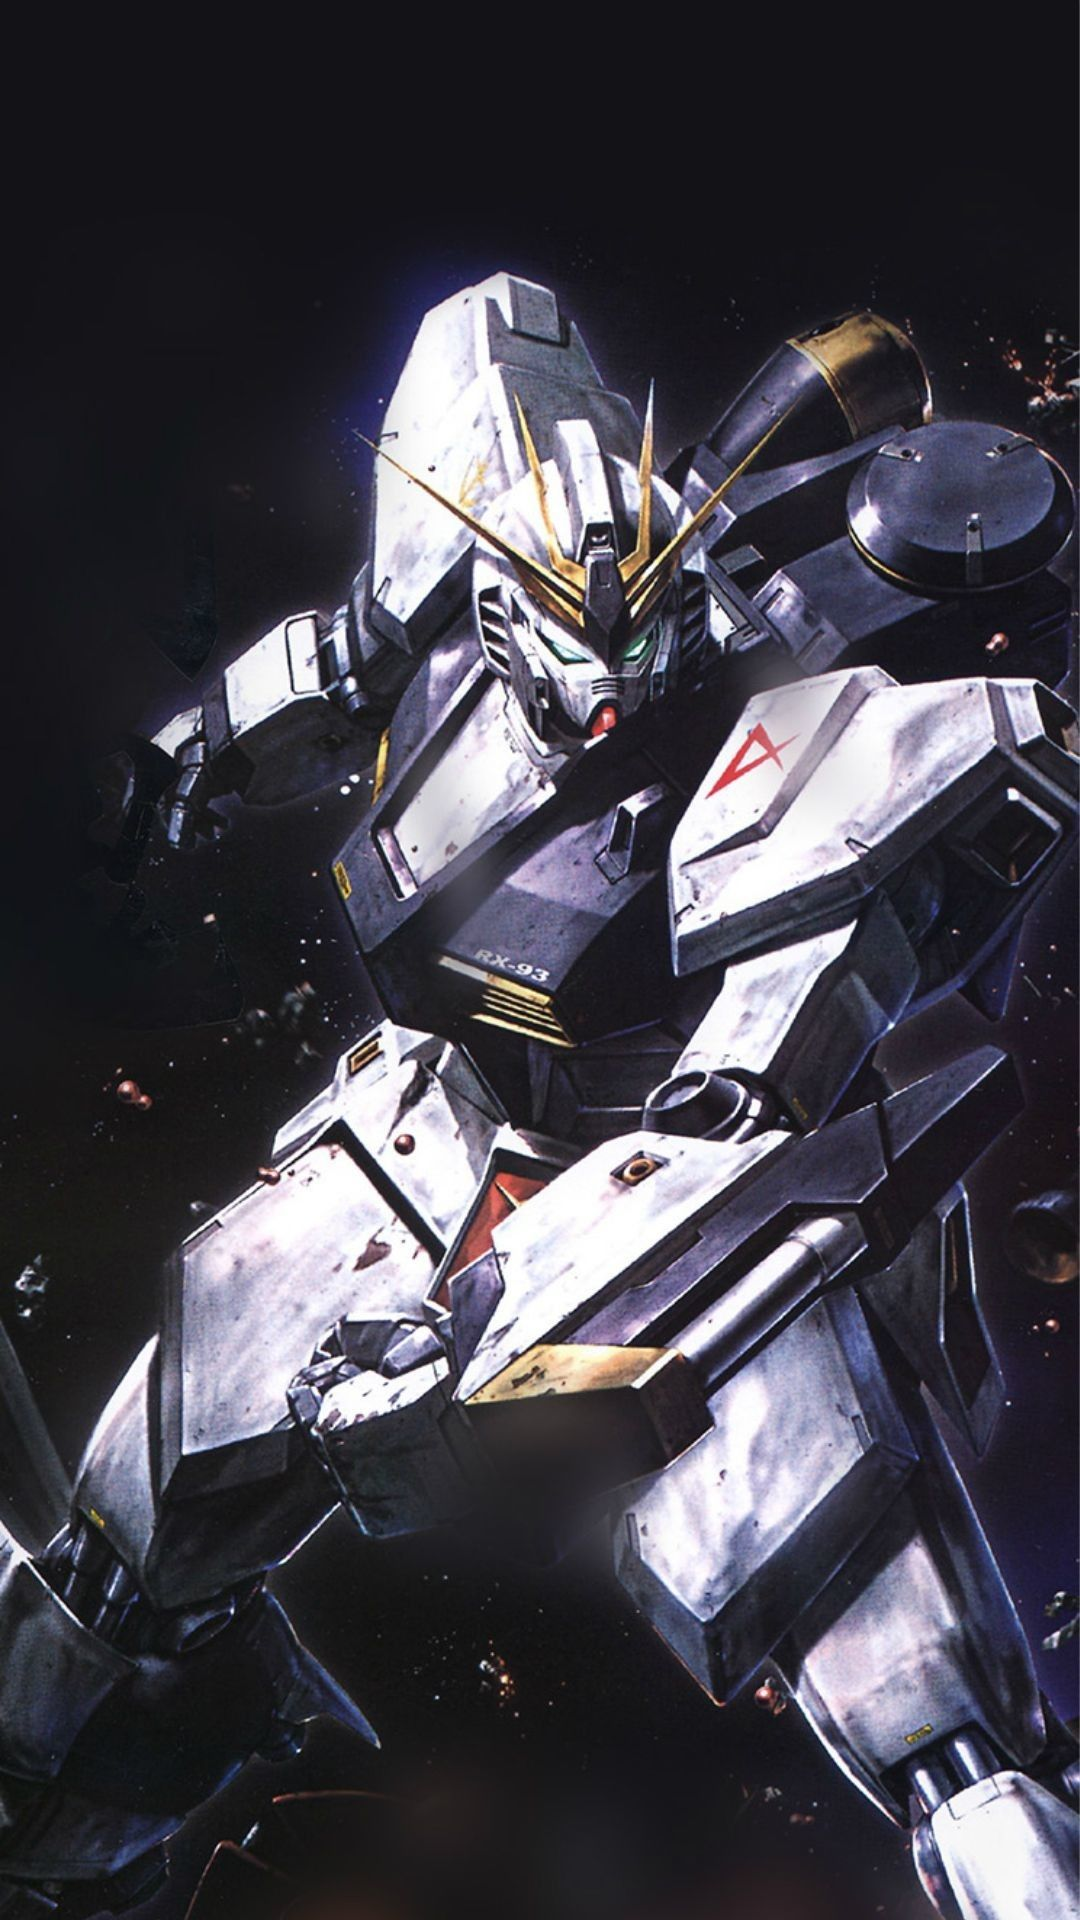 Gundam Wallpaper 1440x2560 Mywallpapers Site In 2020 Gundam Art Gundam Wallpapers Space Art